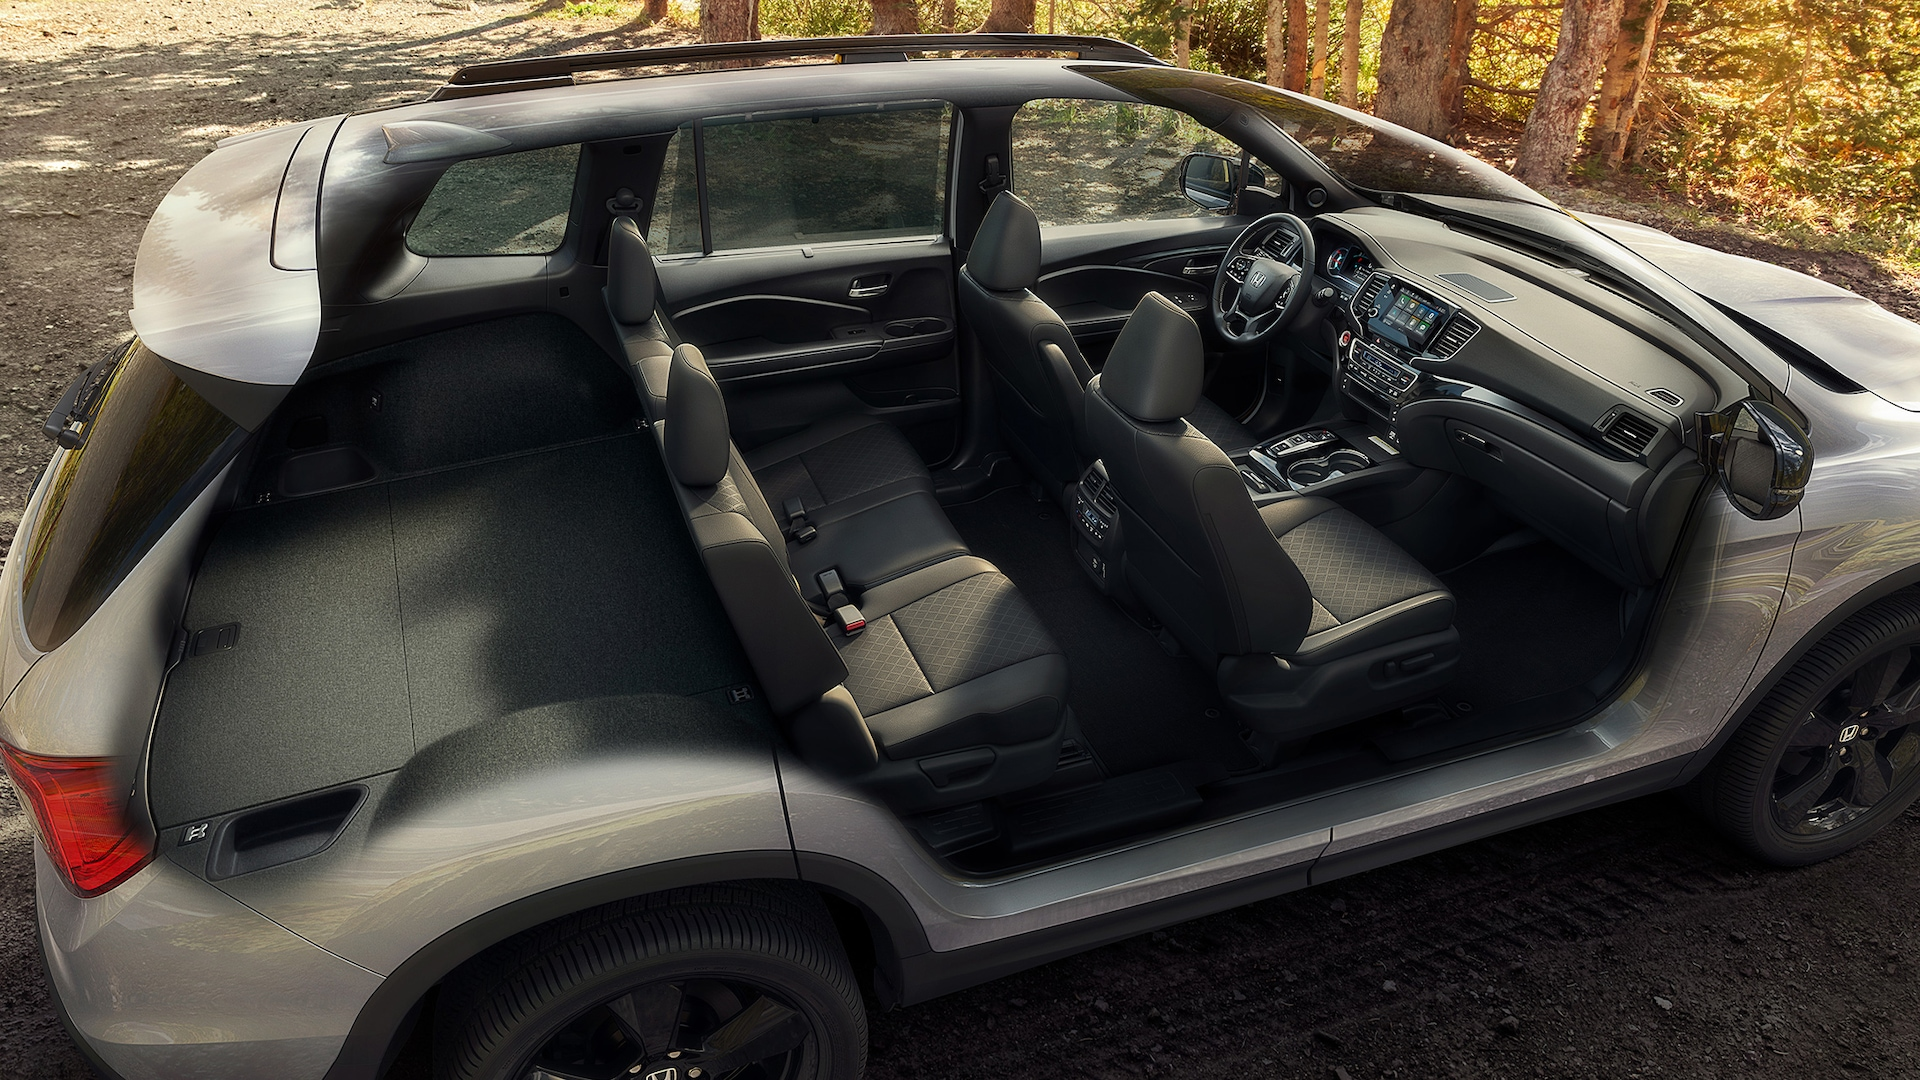 Full interior shot of the 2020 Honda Passport Elite in Black Leather displaying spacious interior and cargo capacity.